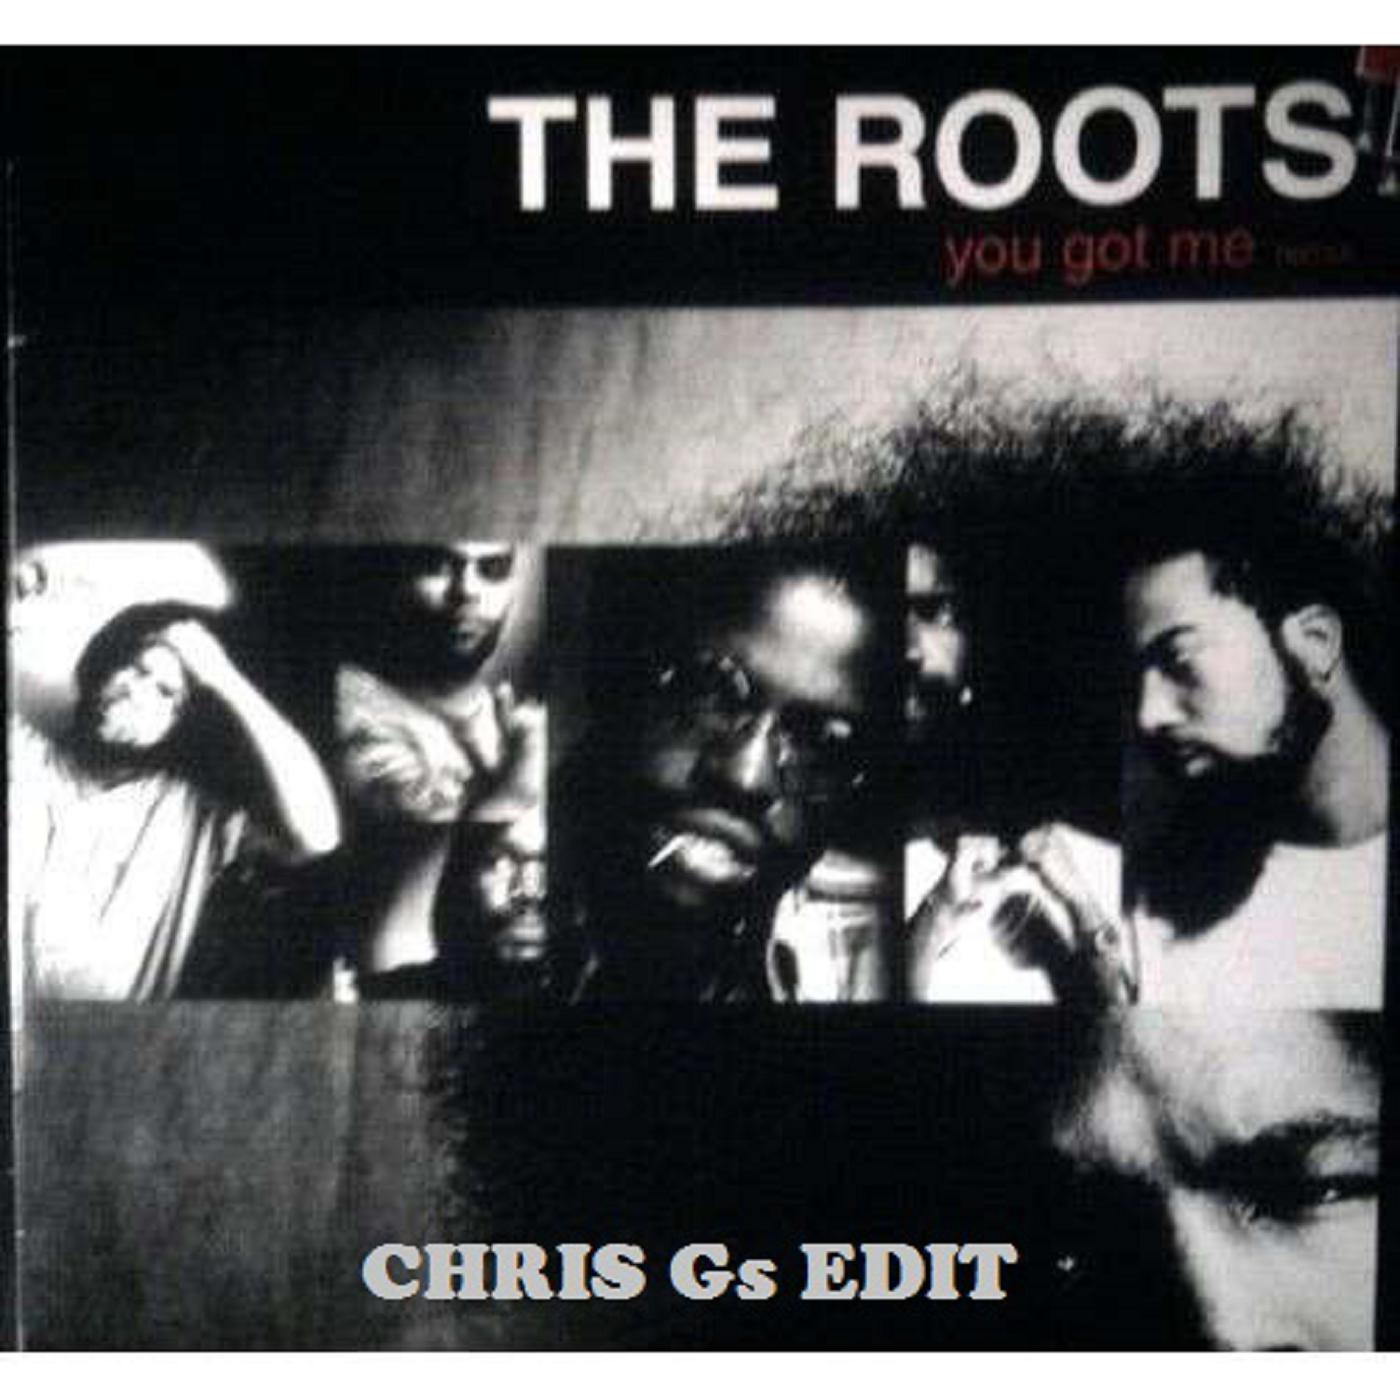 The Roots - You got me (Chris Gs Edit ...